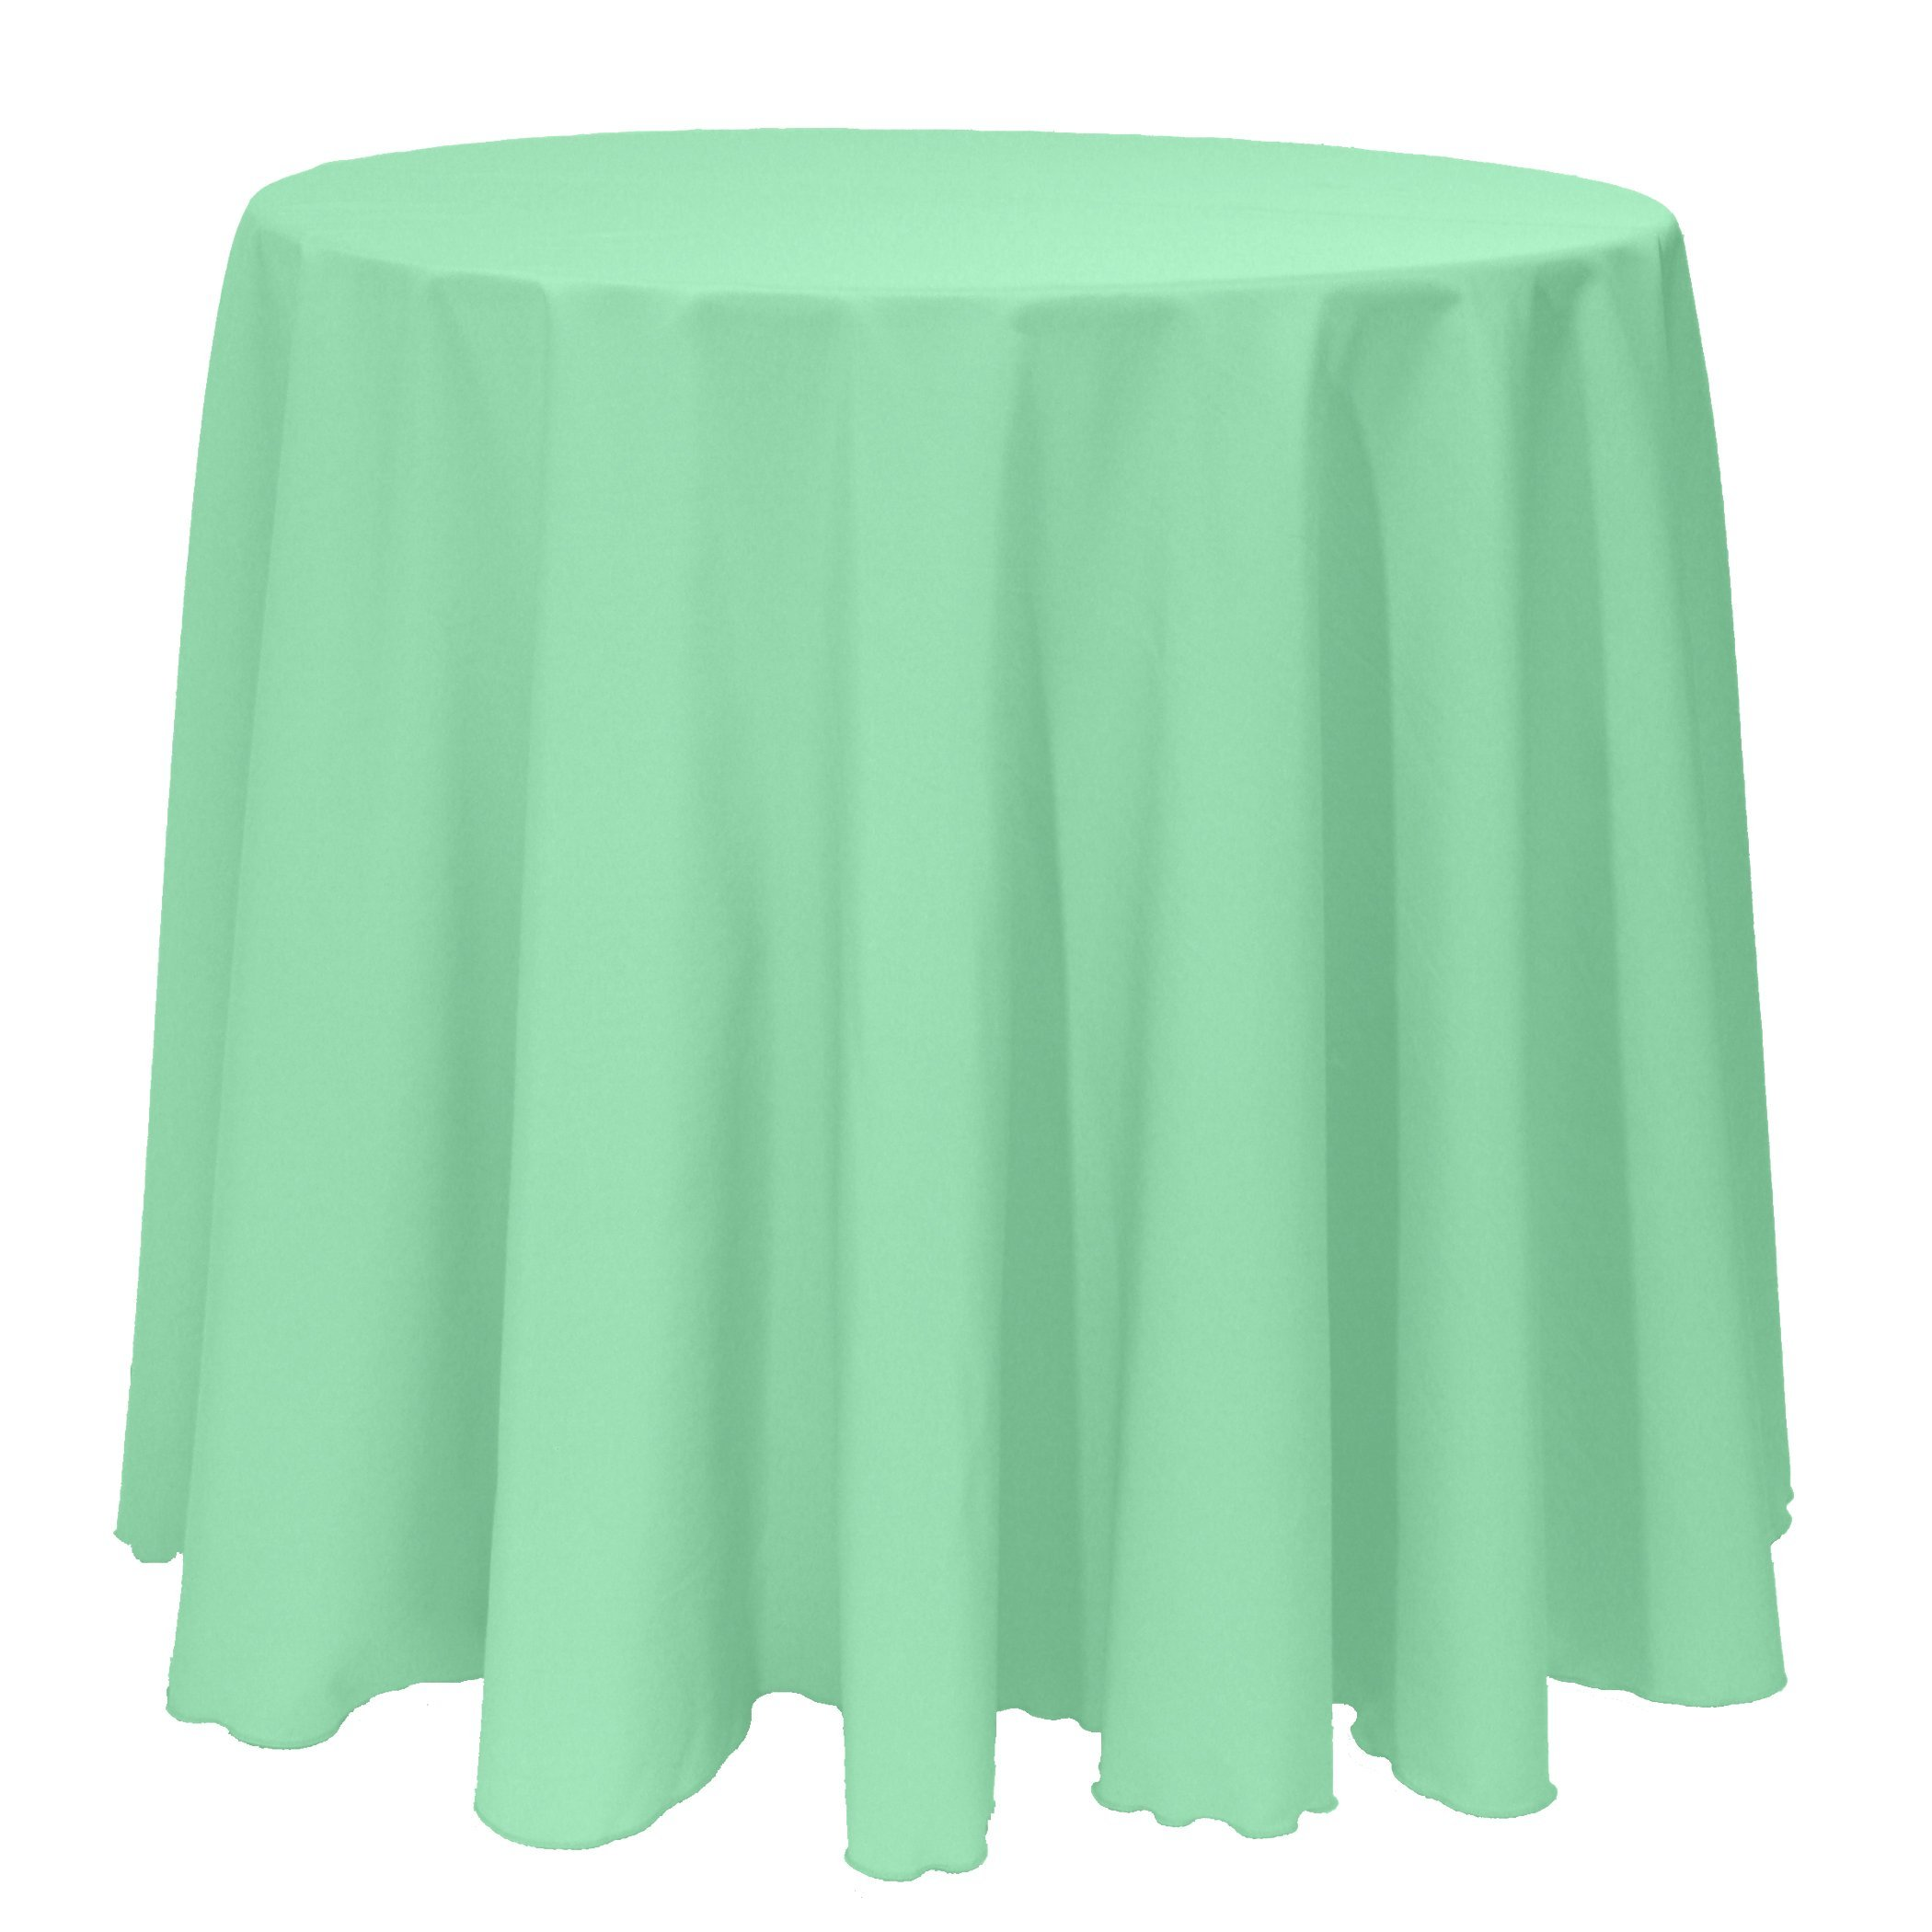 Ultimate Textile (5 Pack) 108-Inch Round Polyester Linen Tablecloth - for Wedding, Restaurant or Banquet use, Mint Light Green